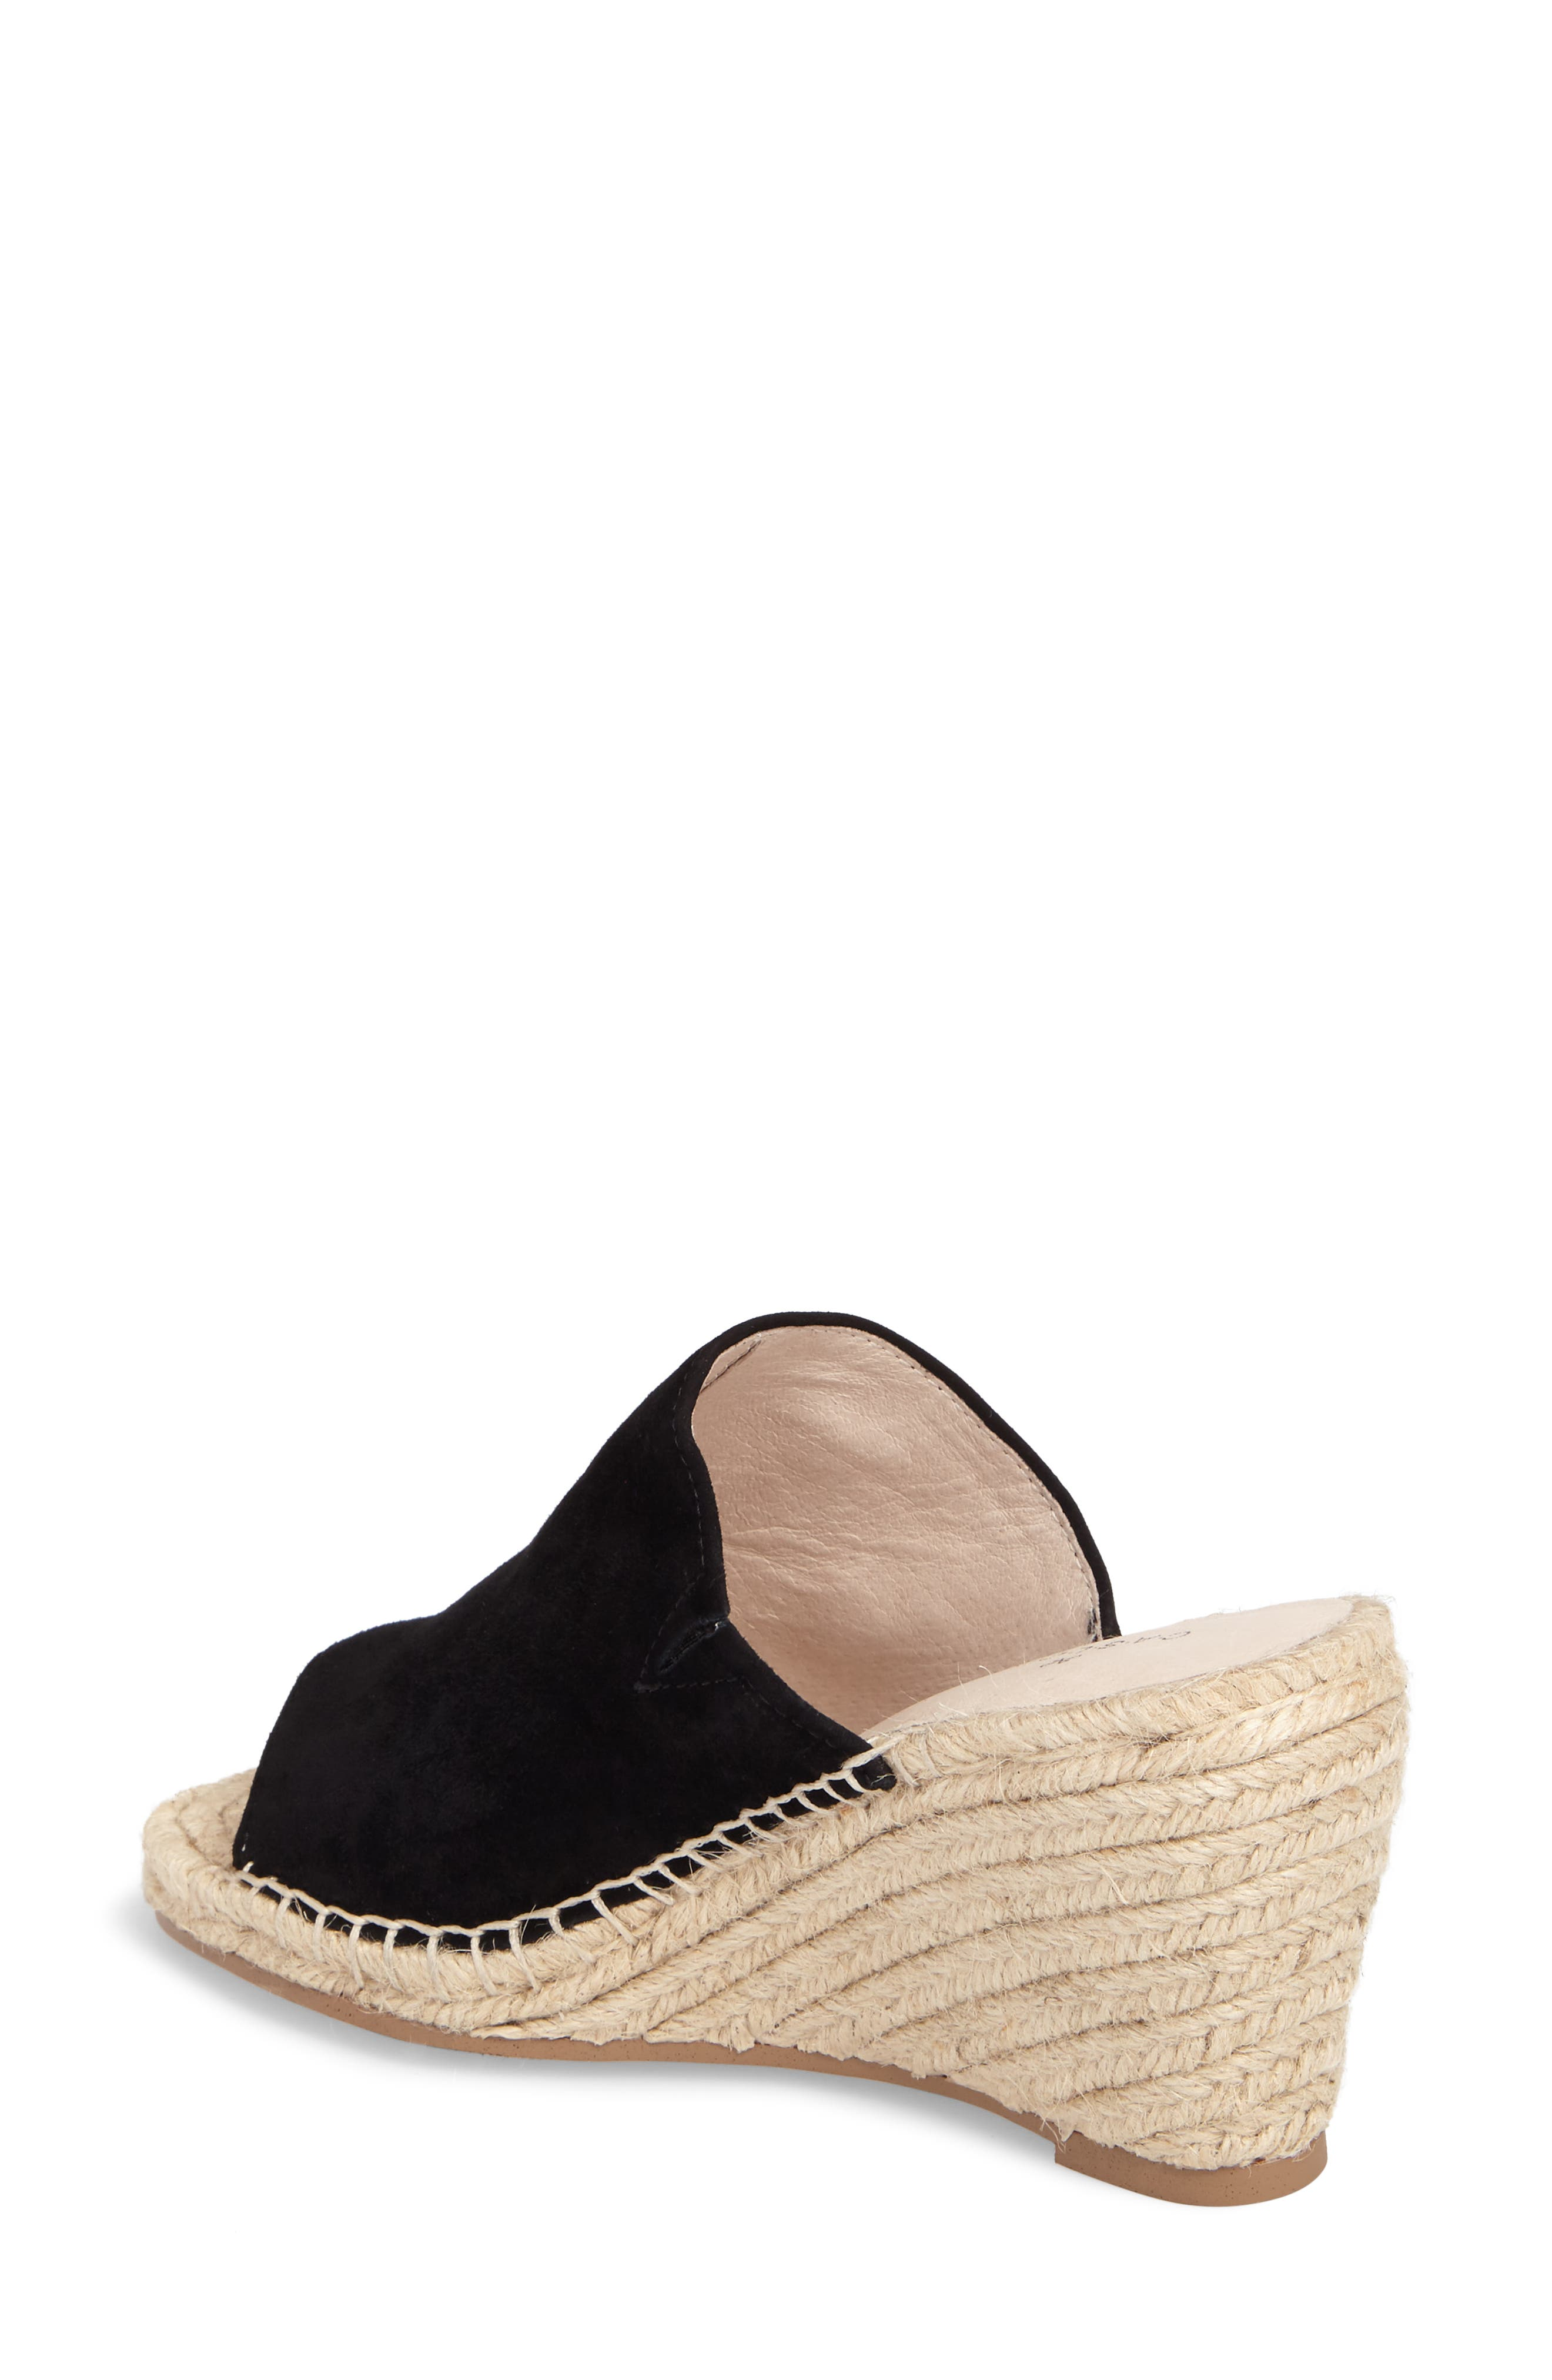 CASLON<SUP>®</SUP>, Sally Wedge Sandal, Alternate thumbnail 2, color, BLACK SUEDE